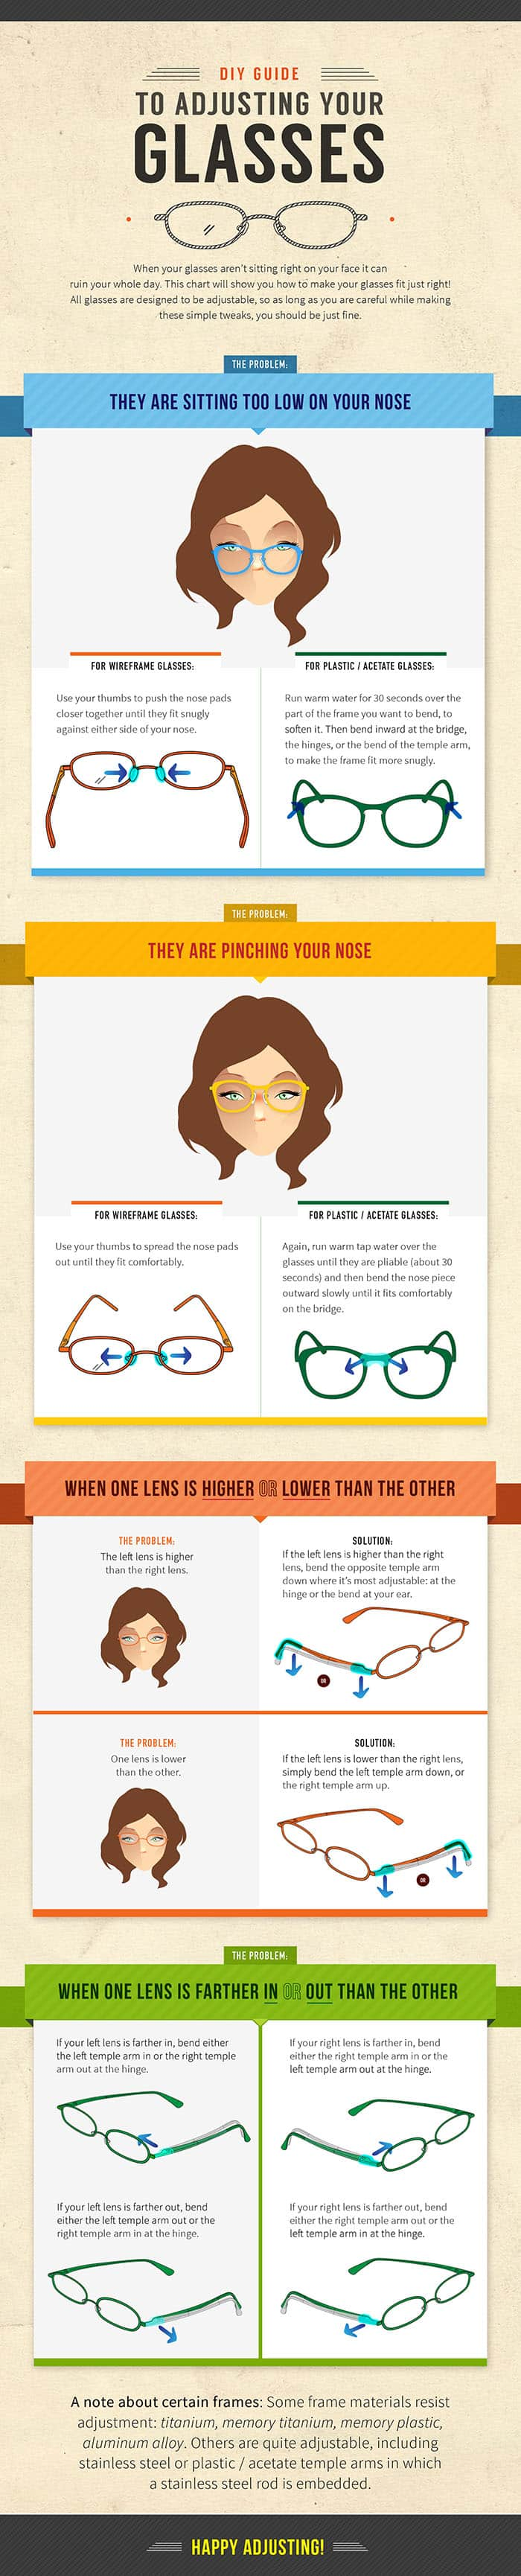 How to adjust your glasses? - Infographic